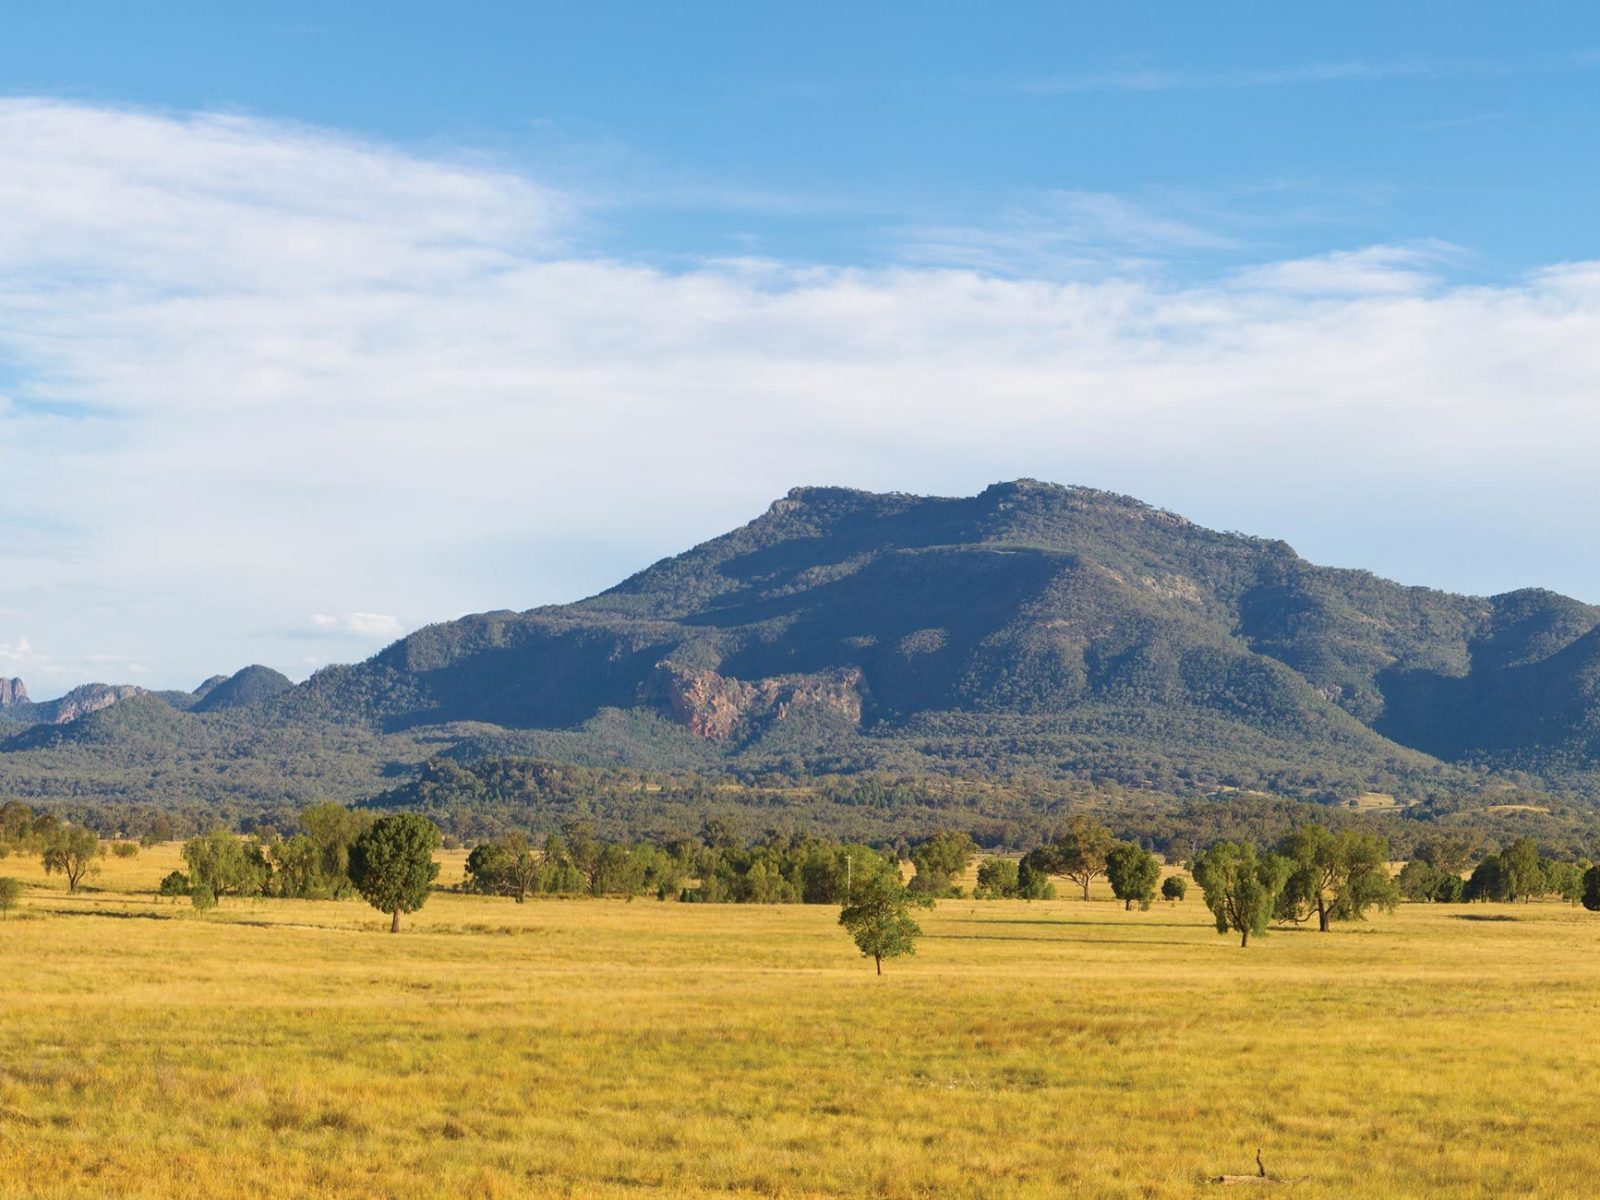 Mountains and plains in Coonabarabran, off Tooraweenah drive in Warrumbungle National Park